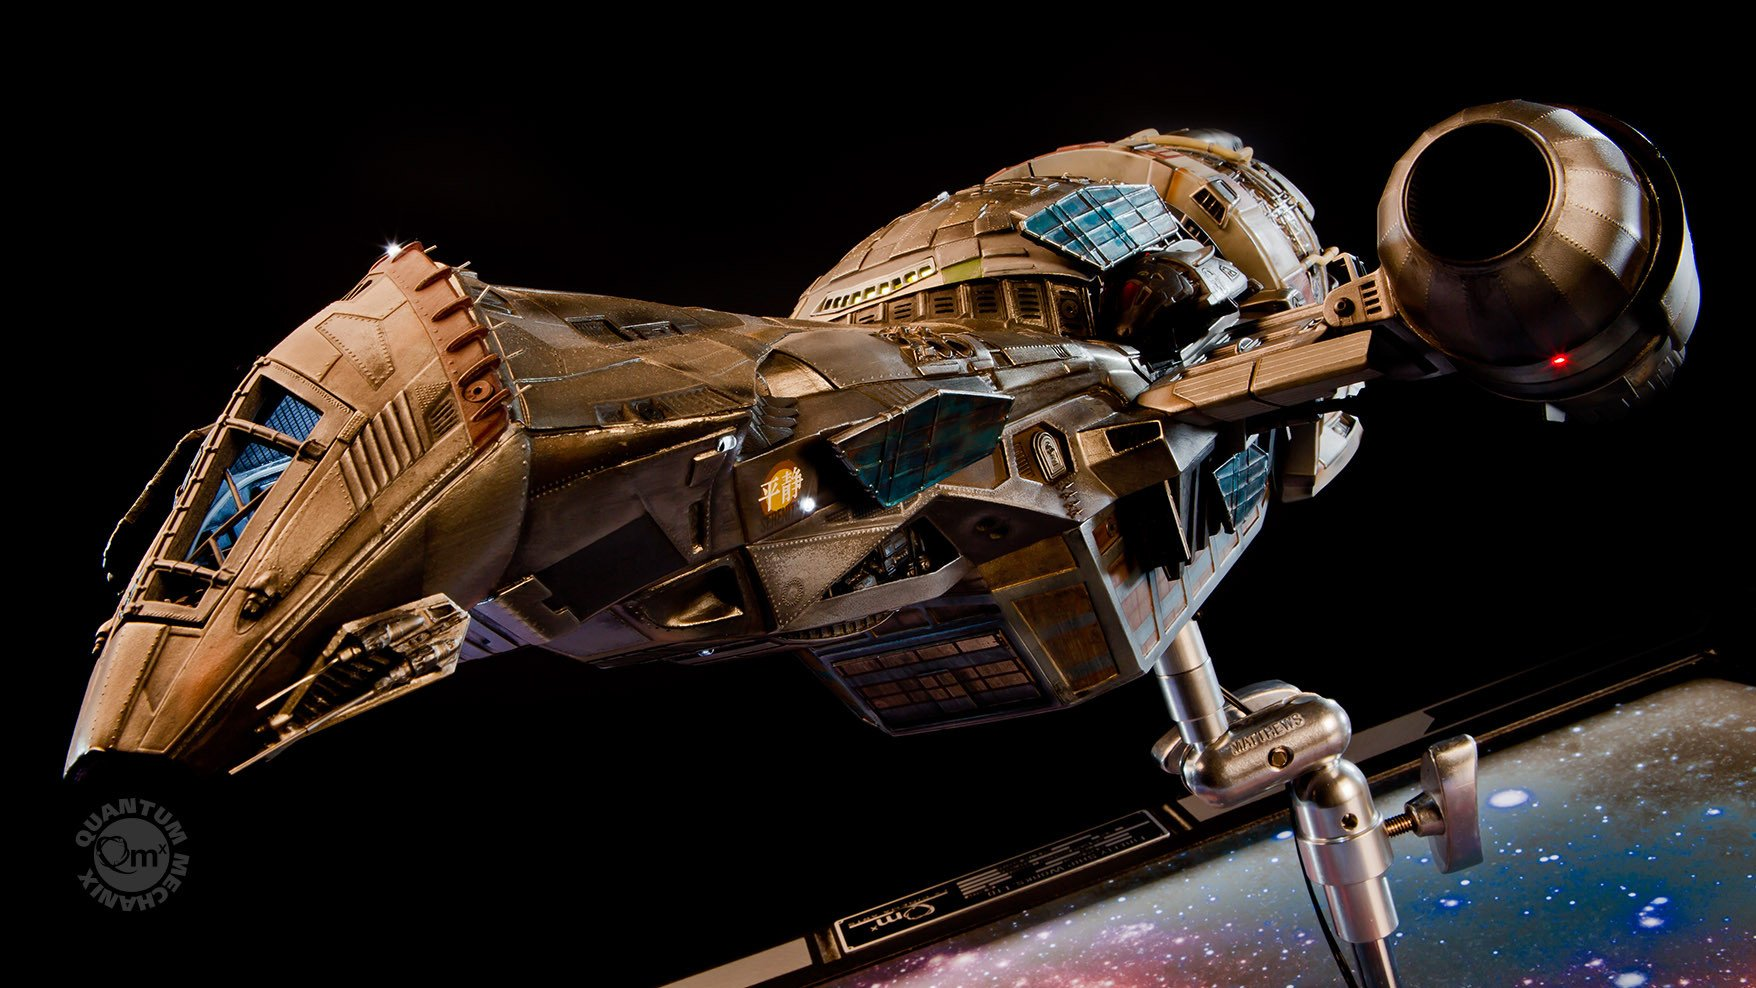 Film Scale Serenity Replica Costs As Much As A Nice Used Car